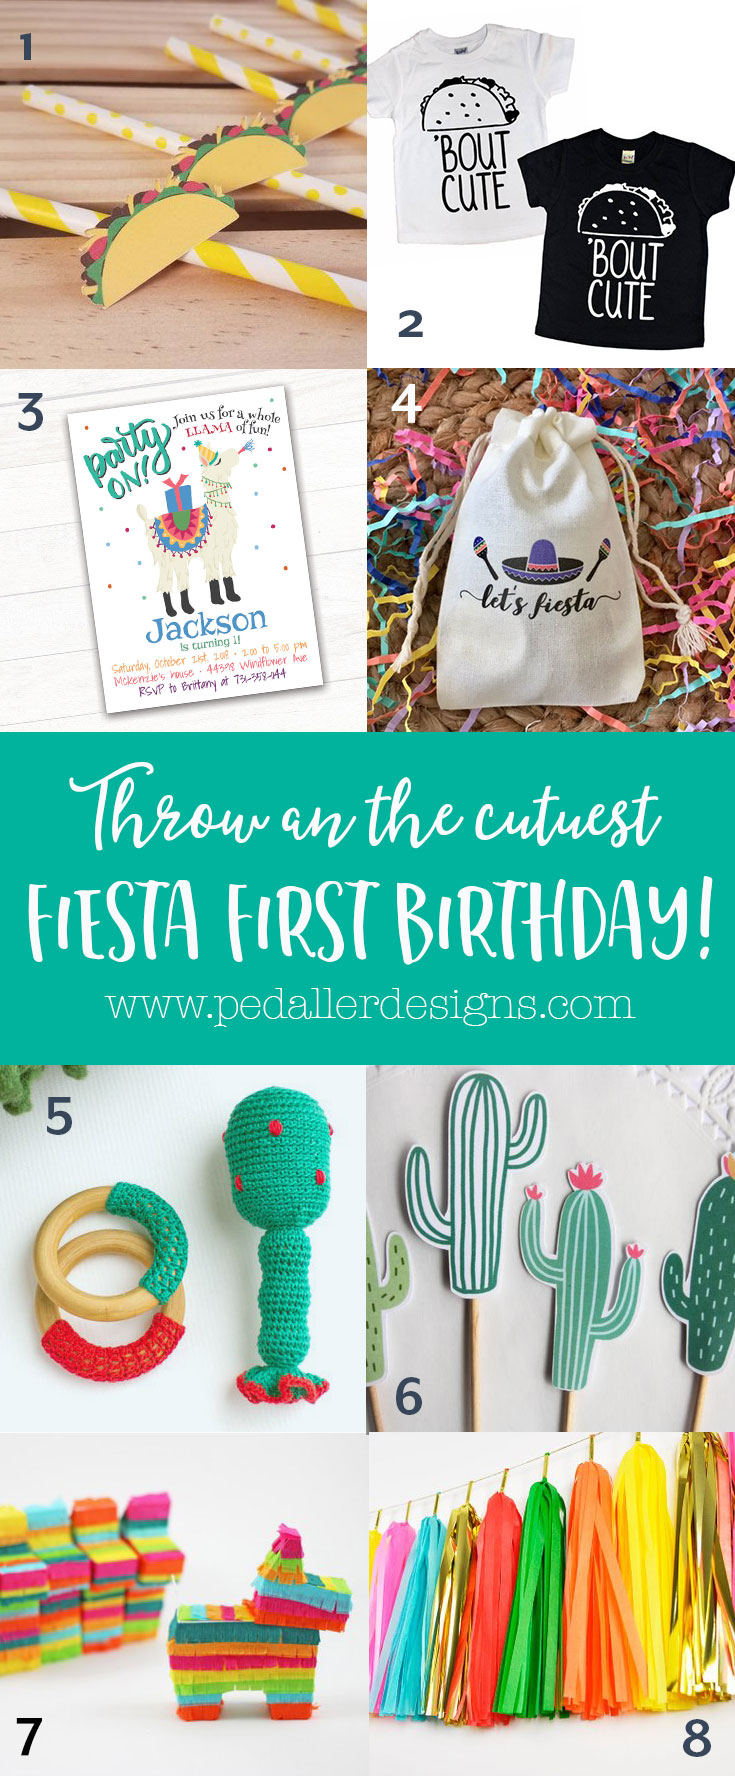 All the cutest ideas and things you need for a memorable Fiesta first birthday party! Everything from cactus, tacos and llamas to make your celebration extra special for your little amigo.